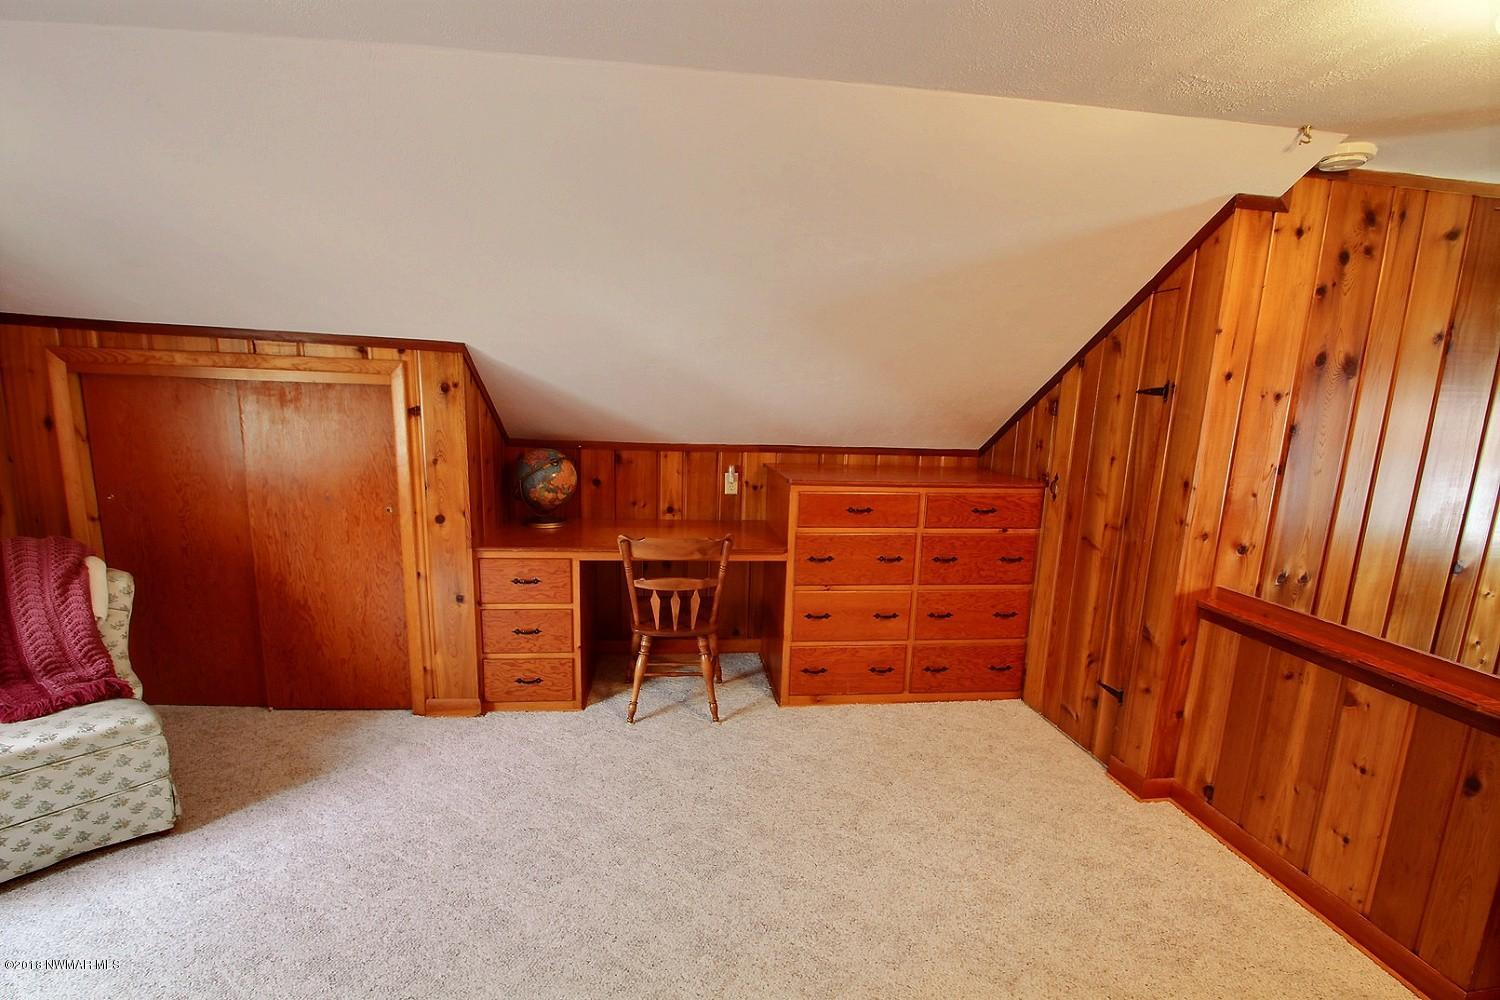 Another view of the third bedroom with built in dresser and extra storage space.